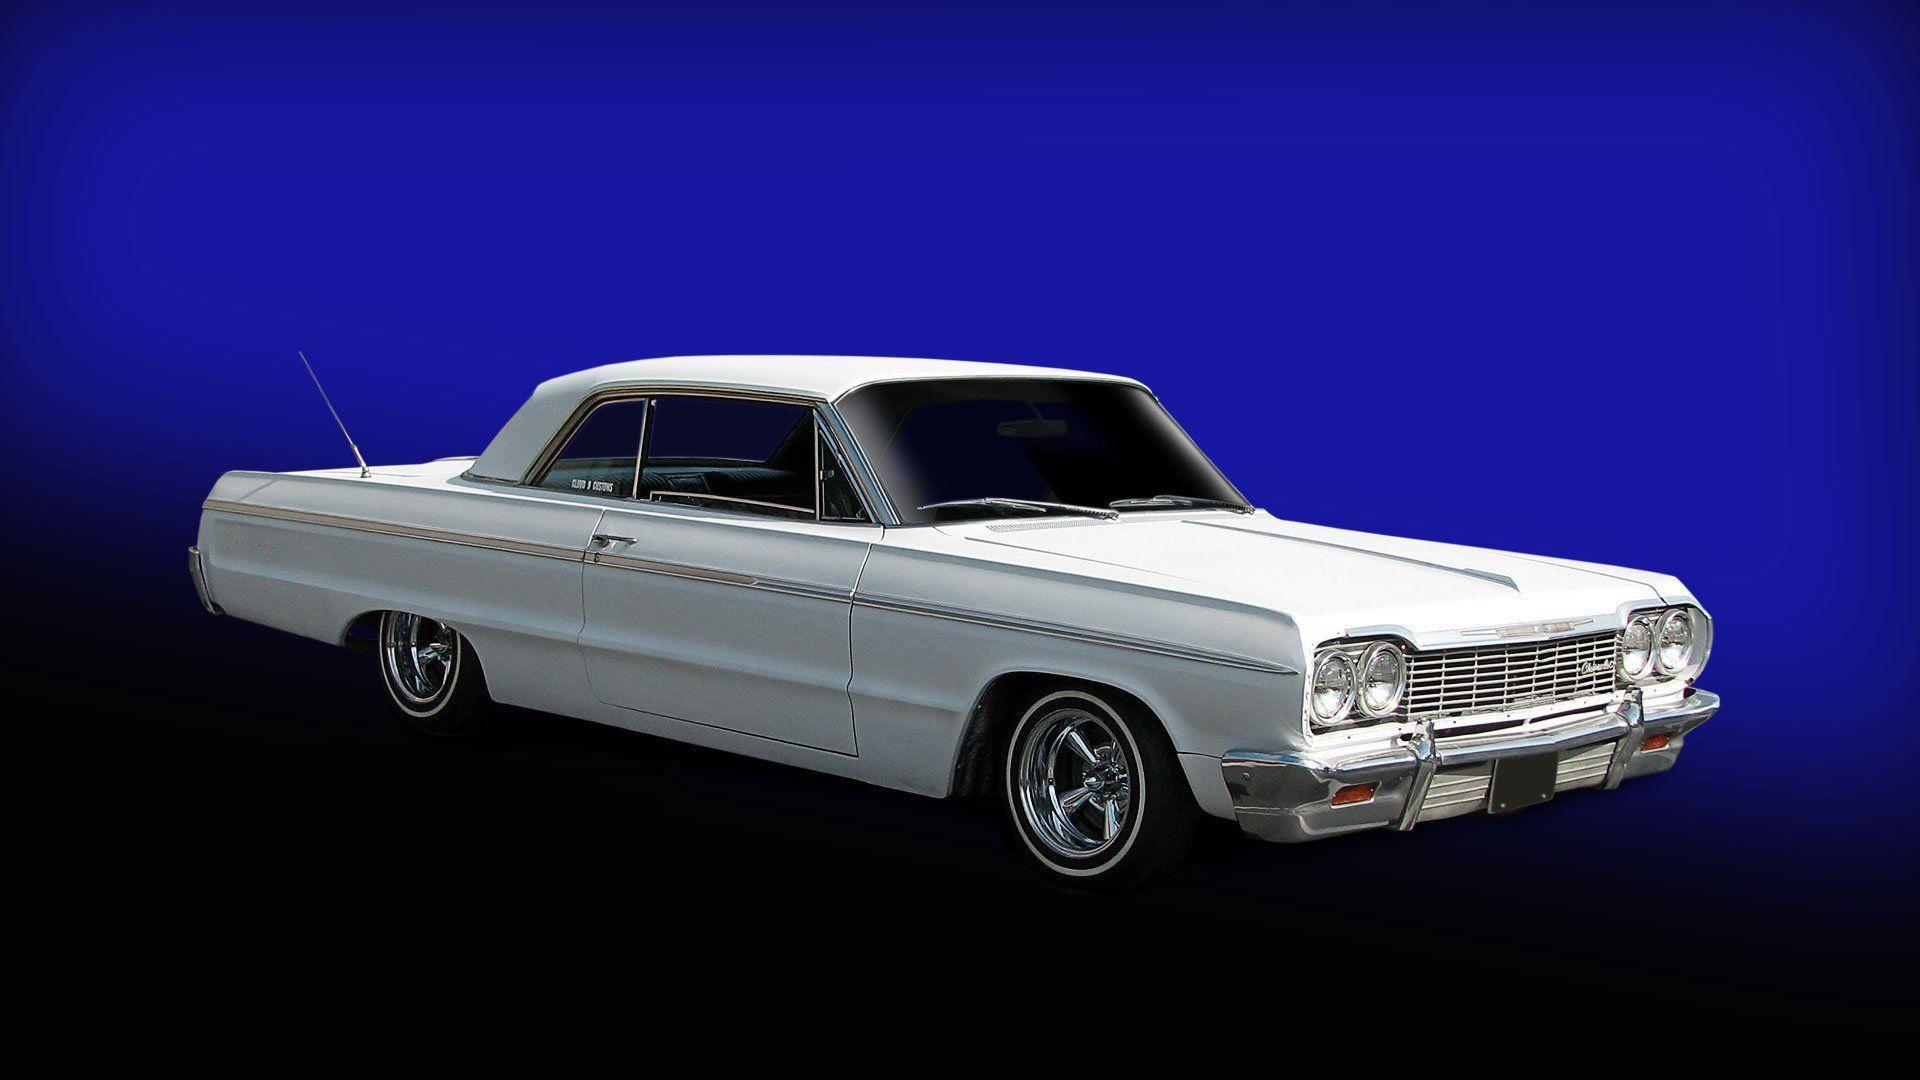 1964 Impala Wallpapers